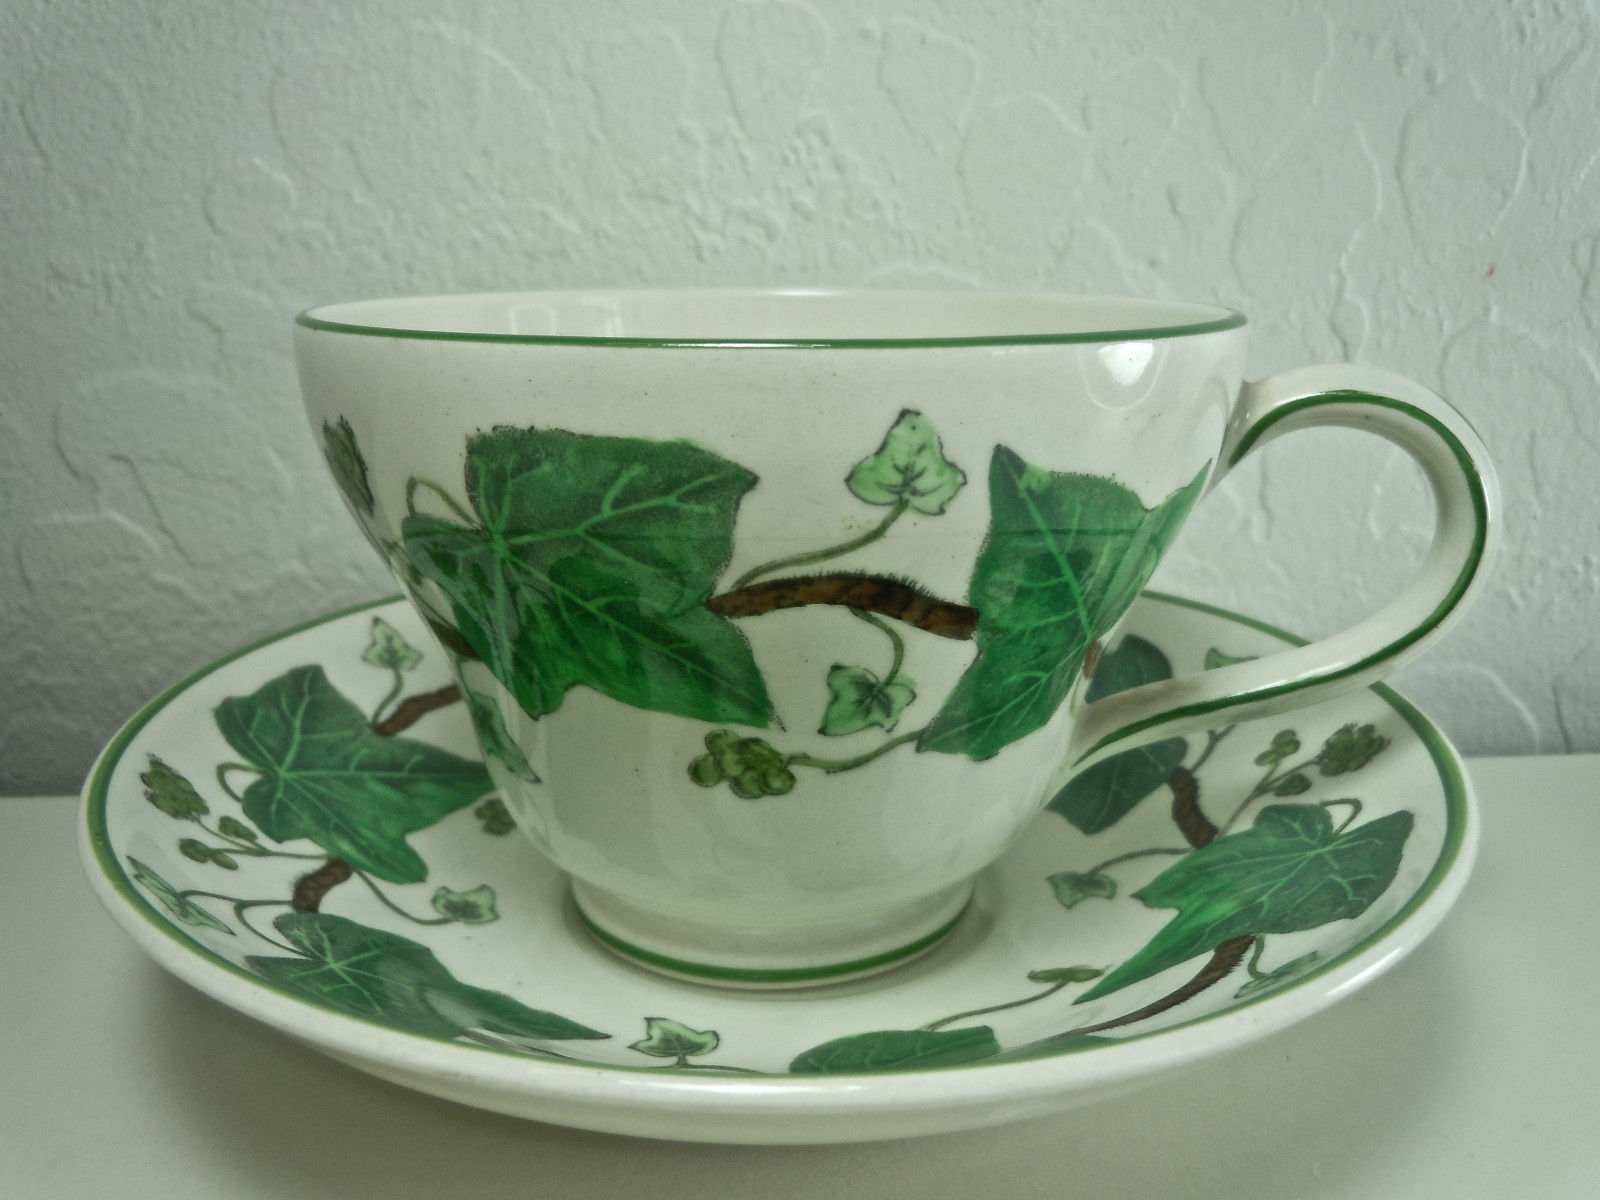 Wedgwood Napoleon Ivy Green Cup and Saucer Set